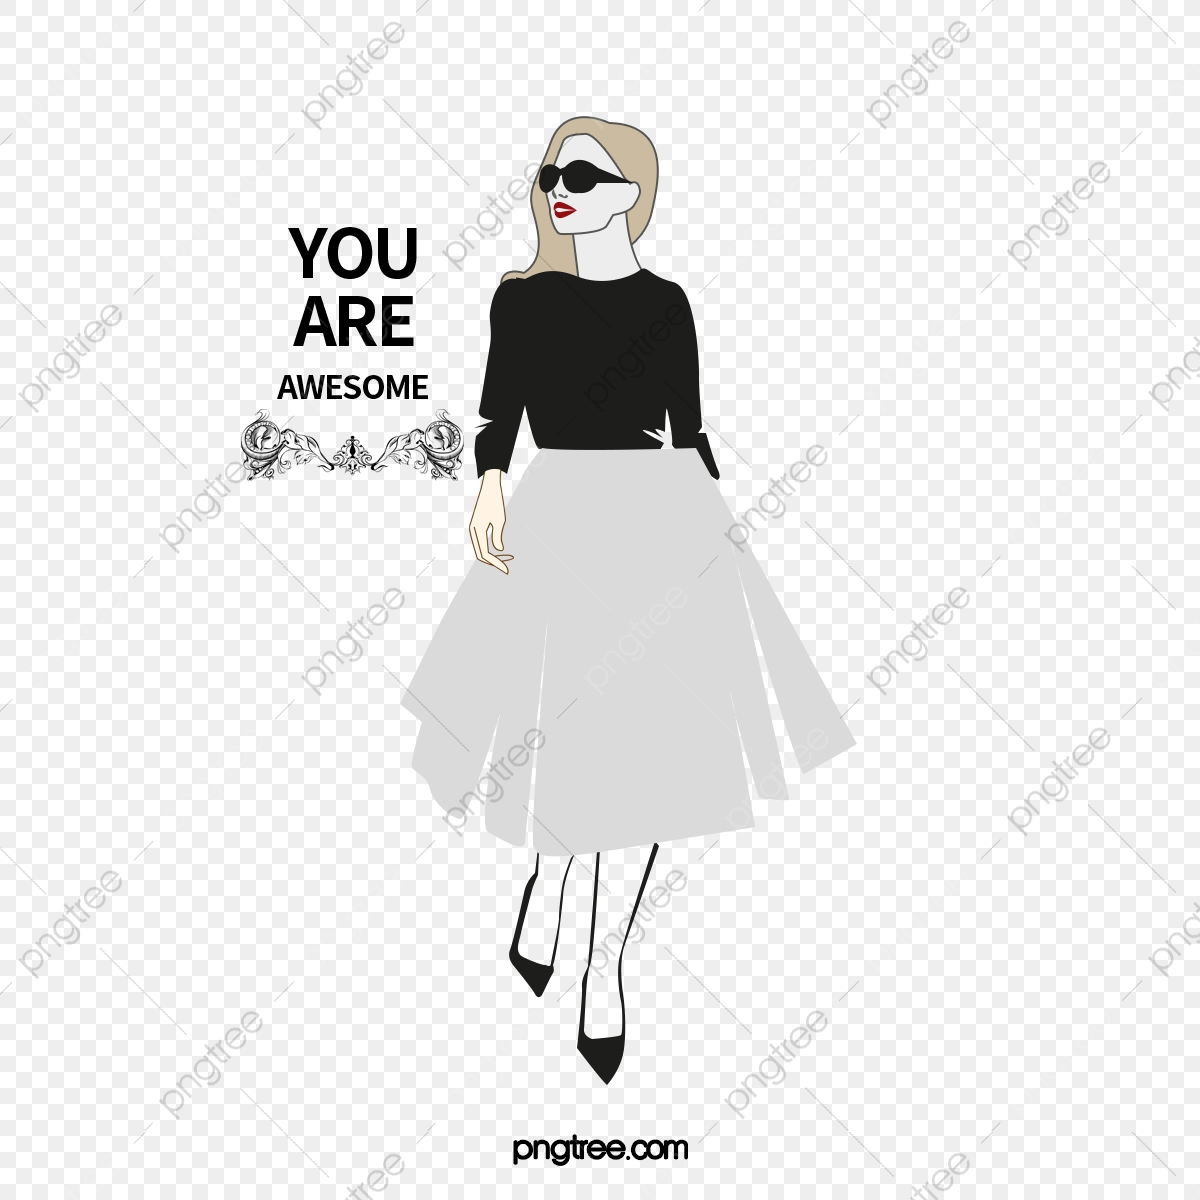 Vector Fashion Girls Fashion Girl Character Beauty Png Transparent Clipart Image And Psd File For Free Download